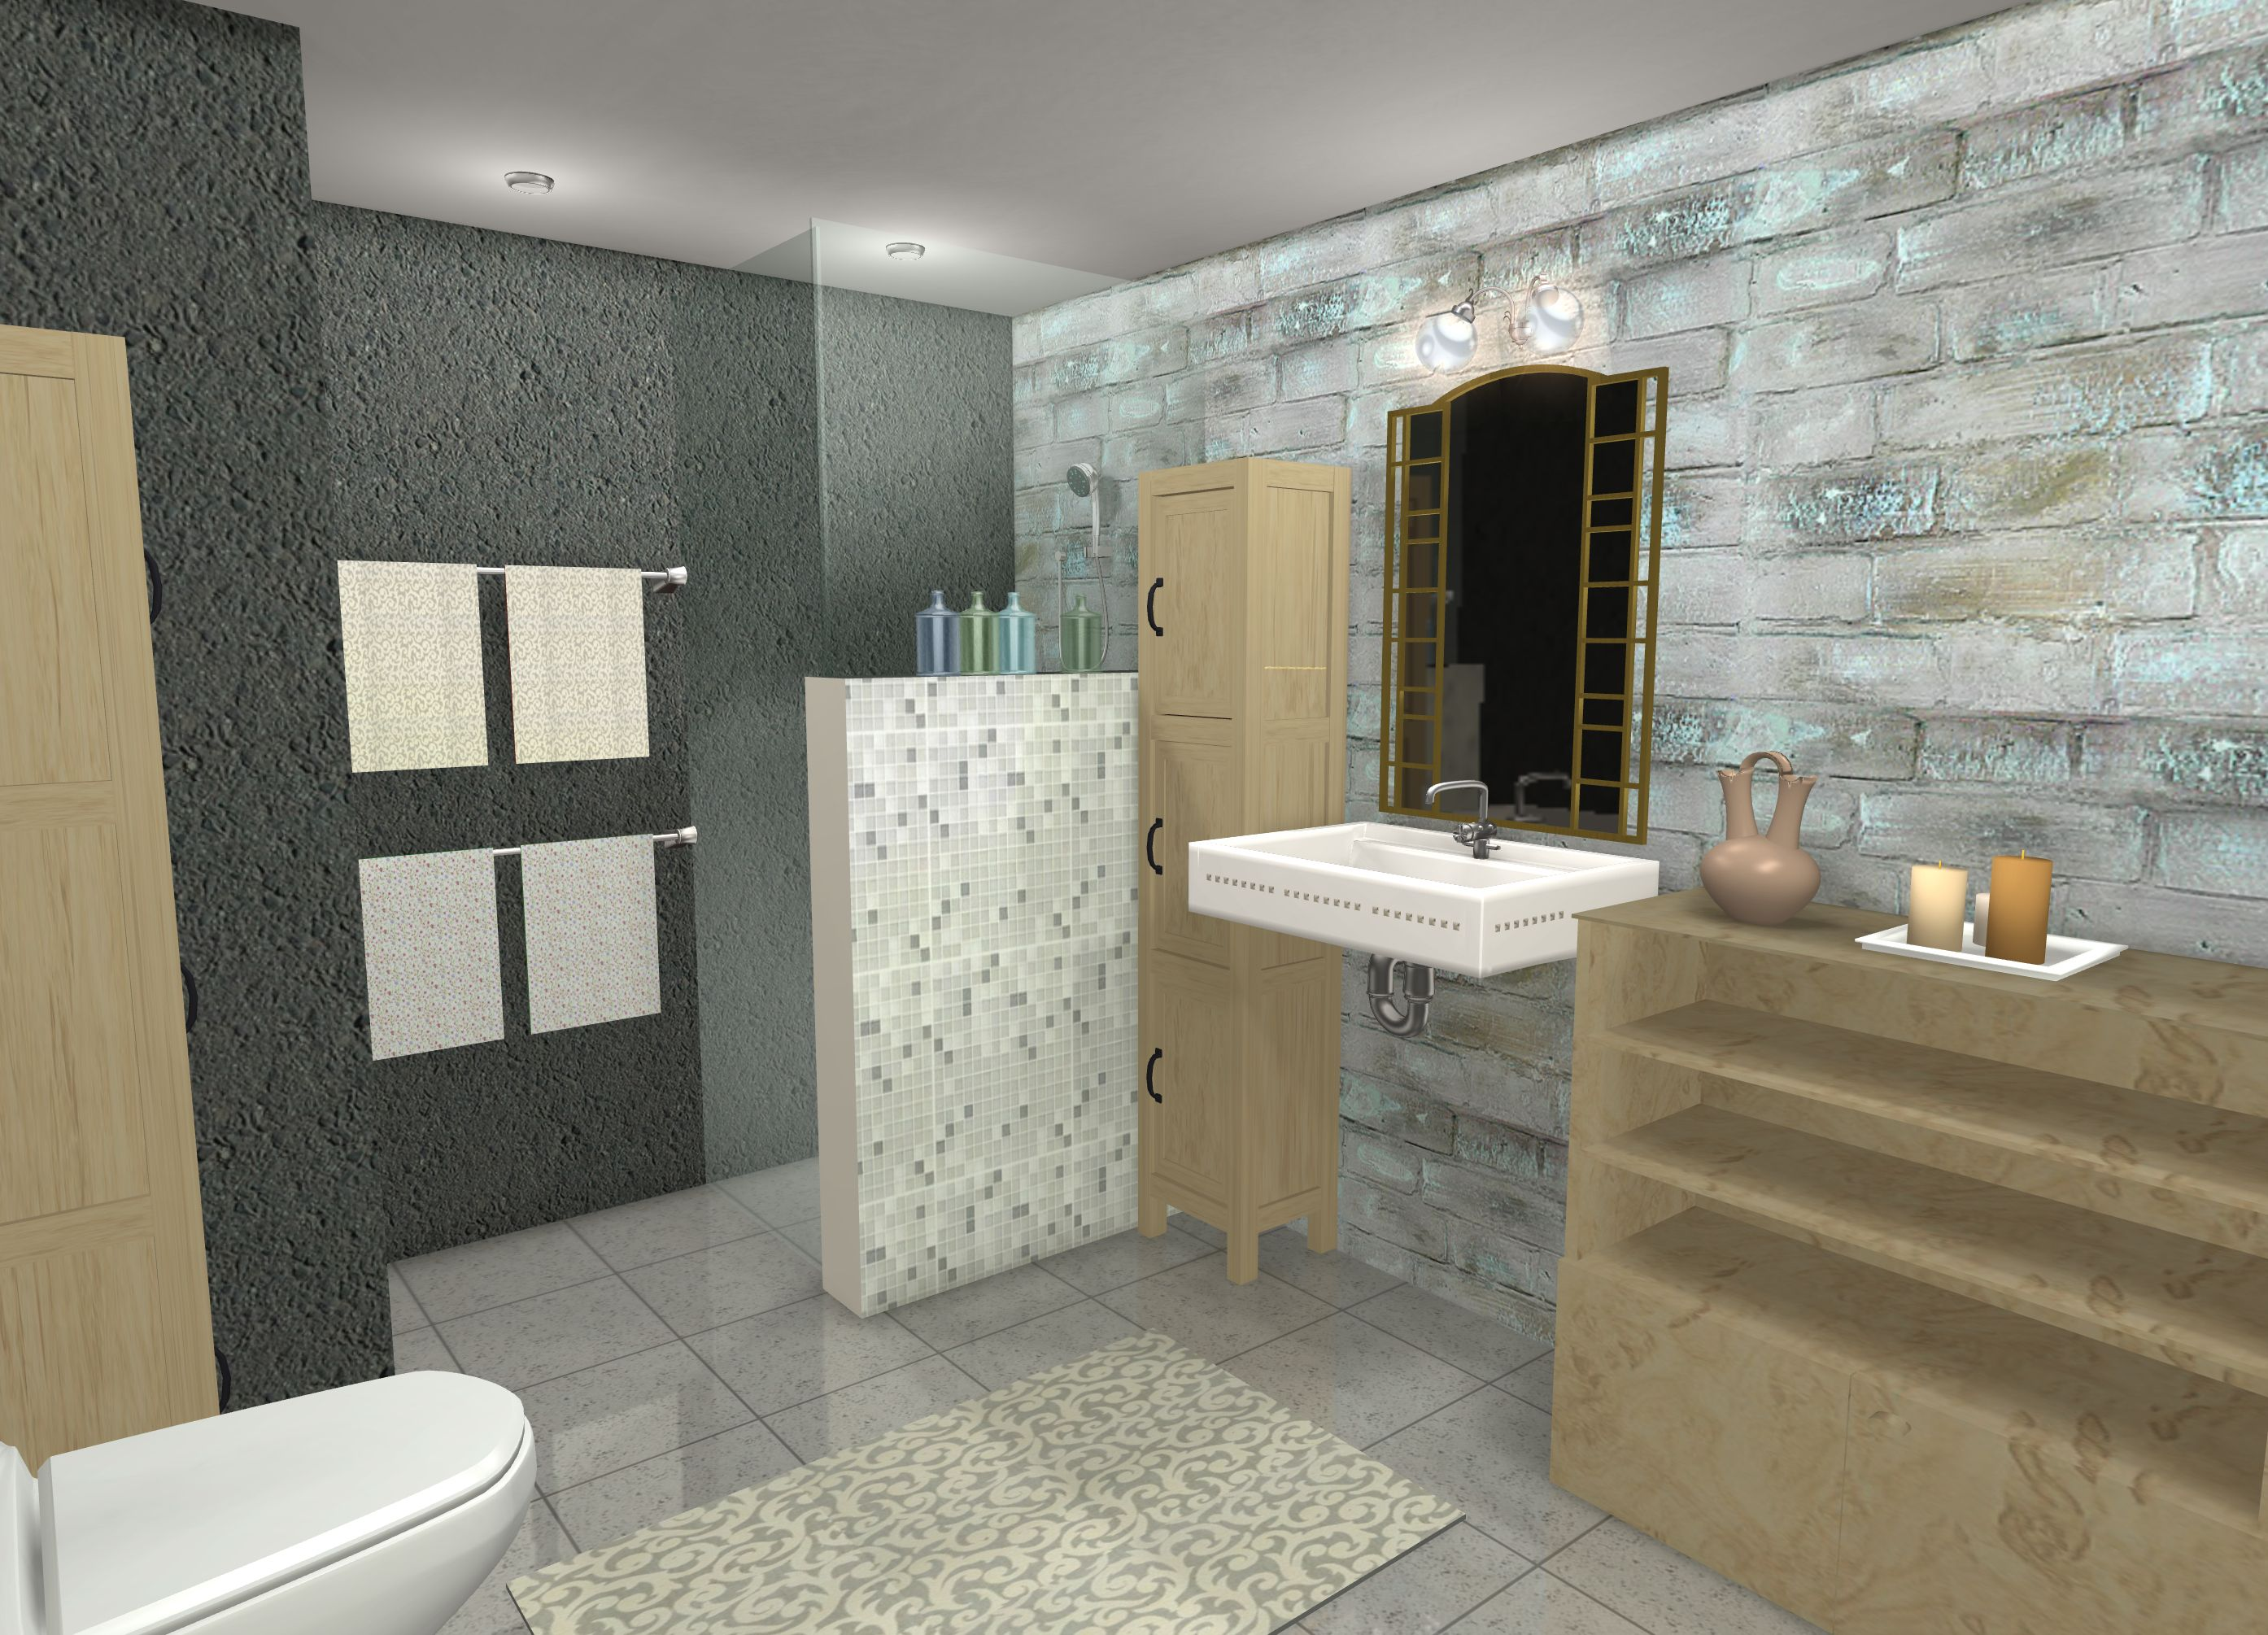 Ios Version Of Livehome3d Utilizes Renewed Sample Rooms And